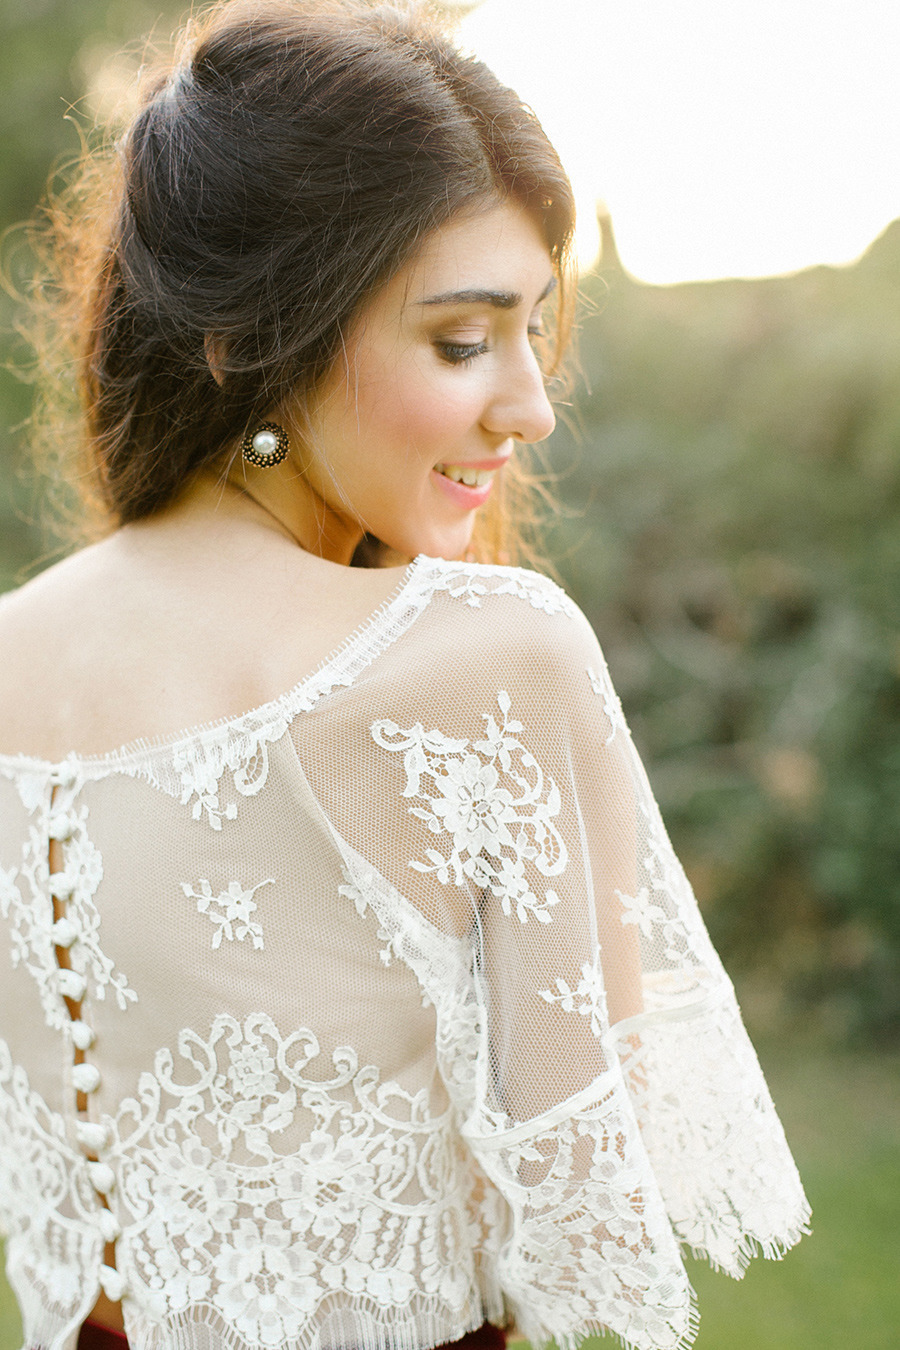 Boho Chic Wedding Shoot From Anna Roussos Photography